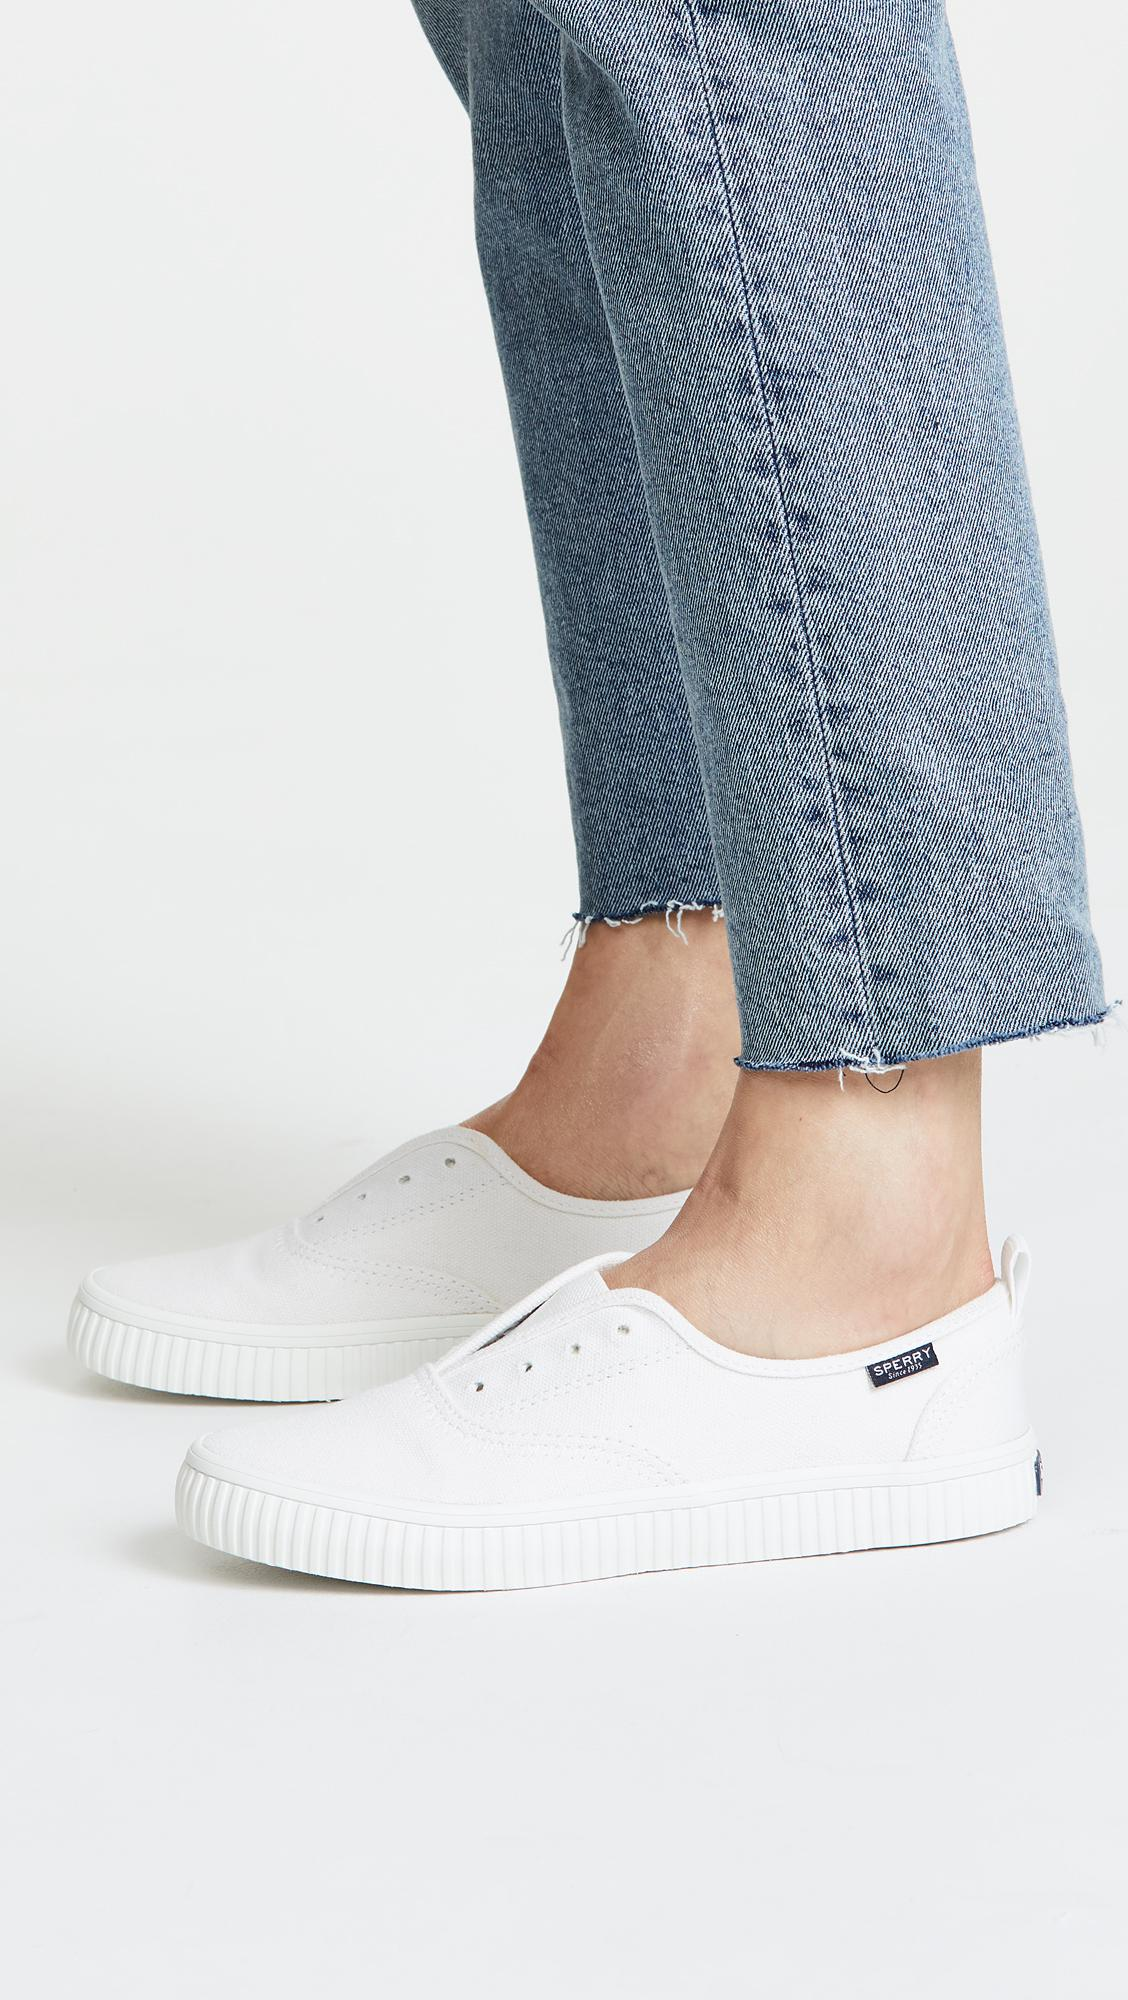 Sperry Top-Sider Canvas Crest Creeper Cvo Sneakers in White